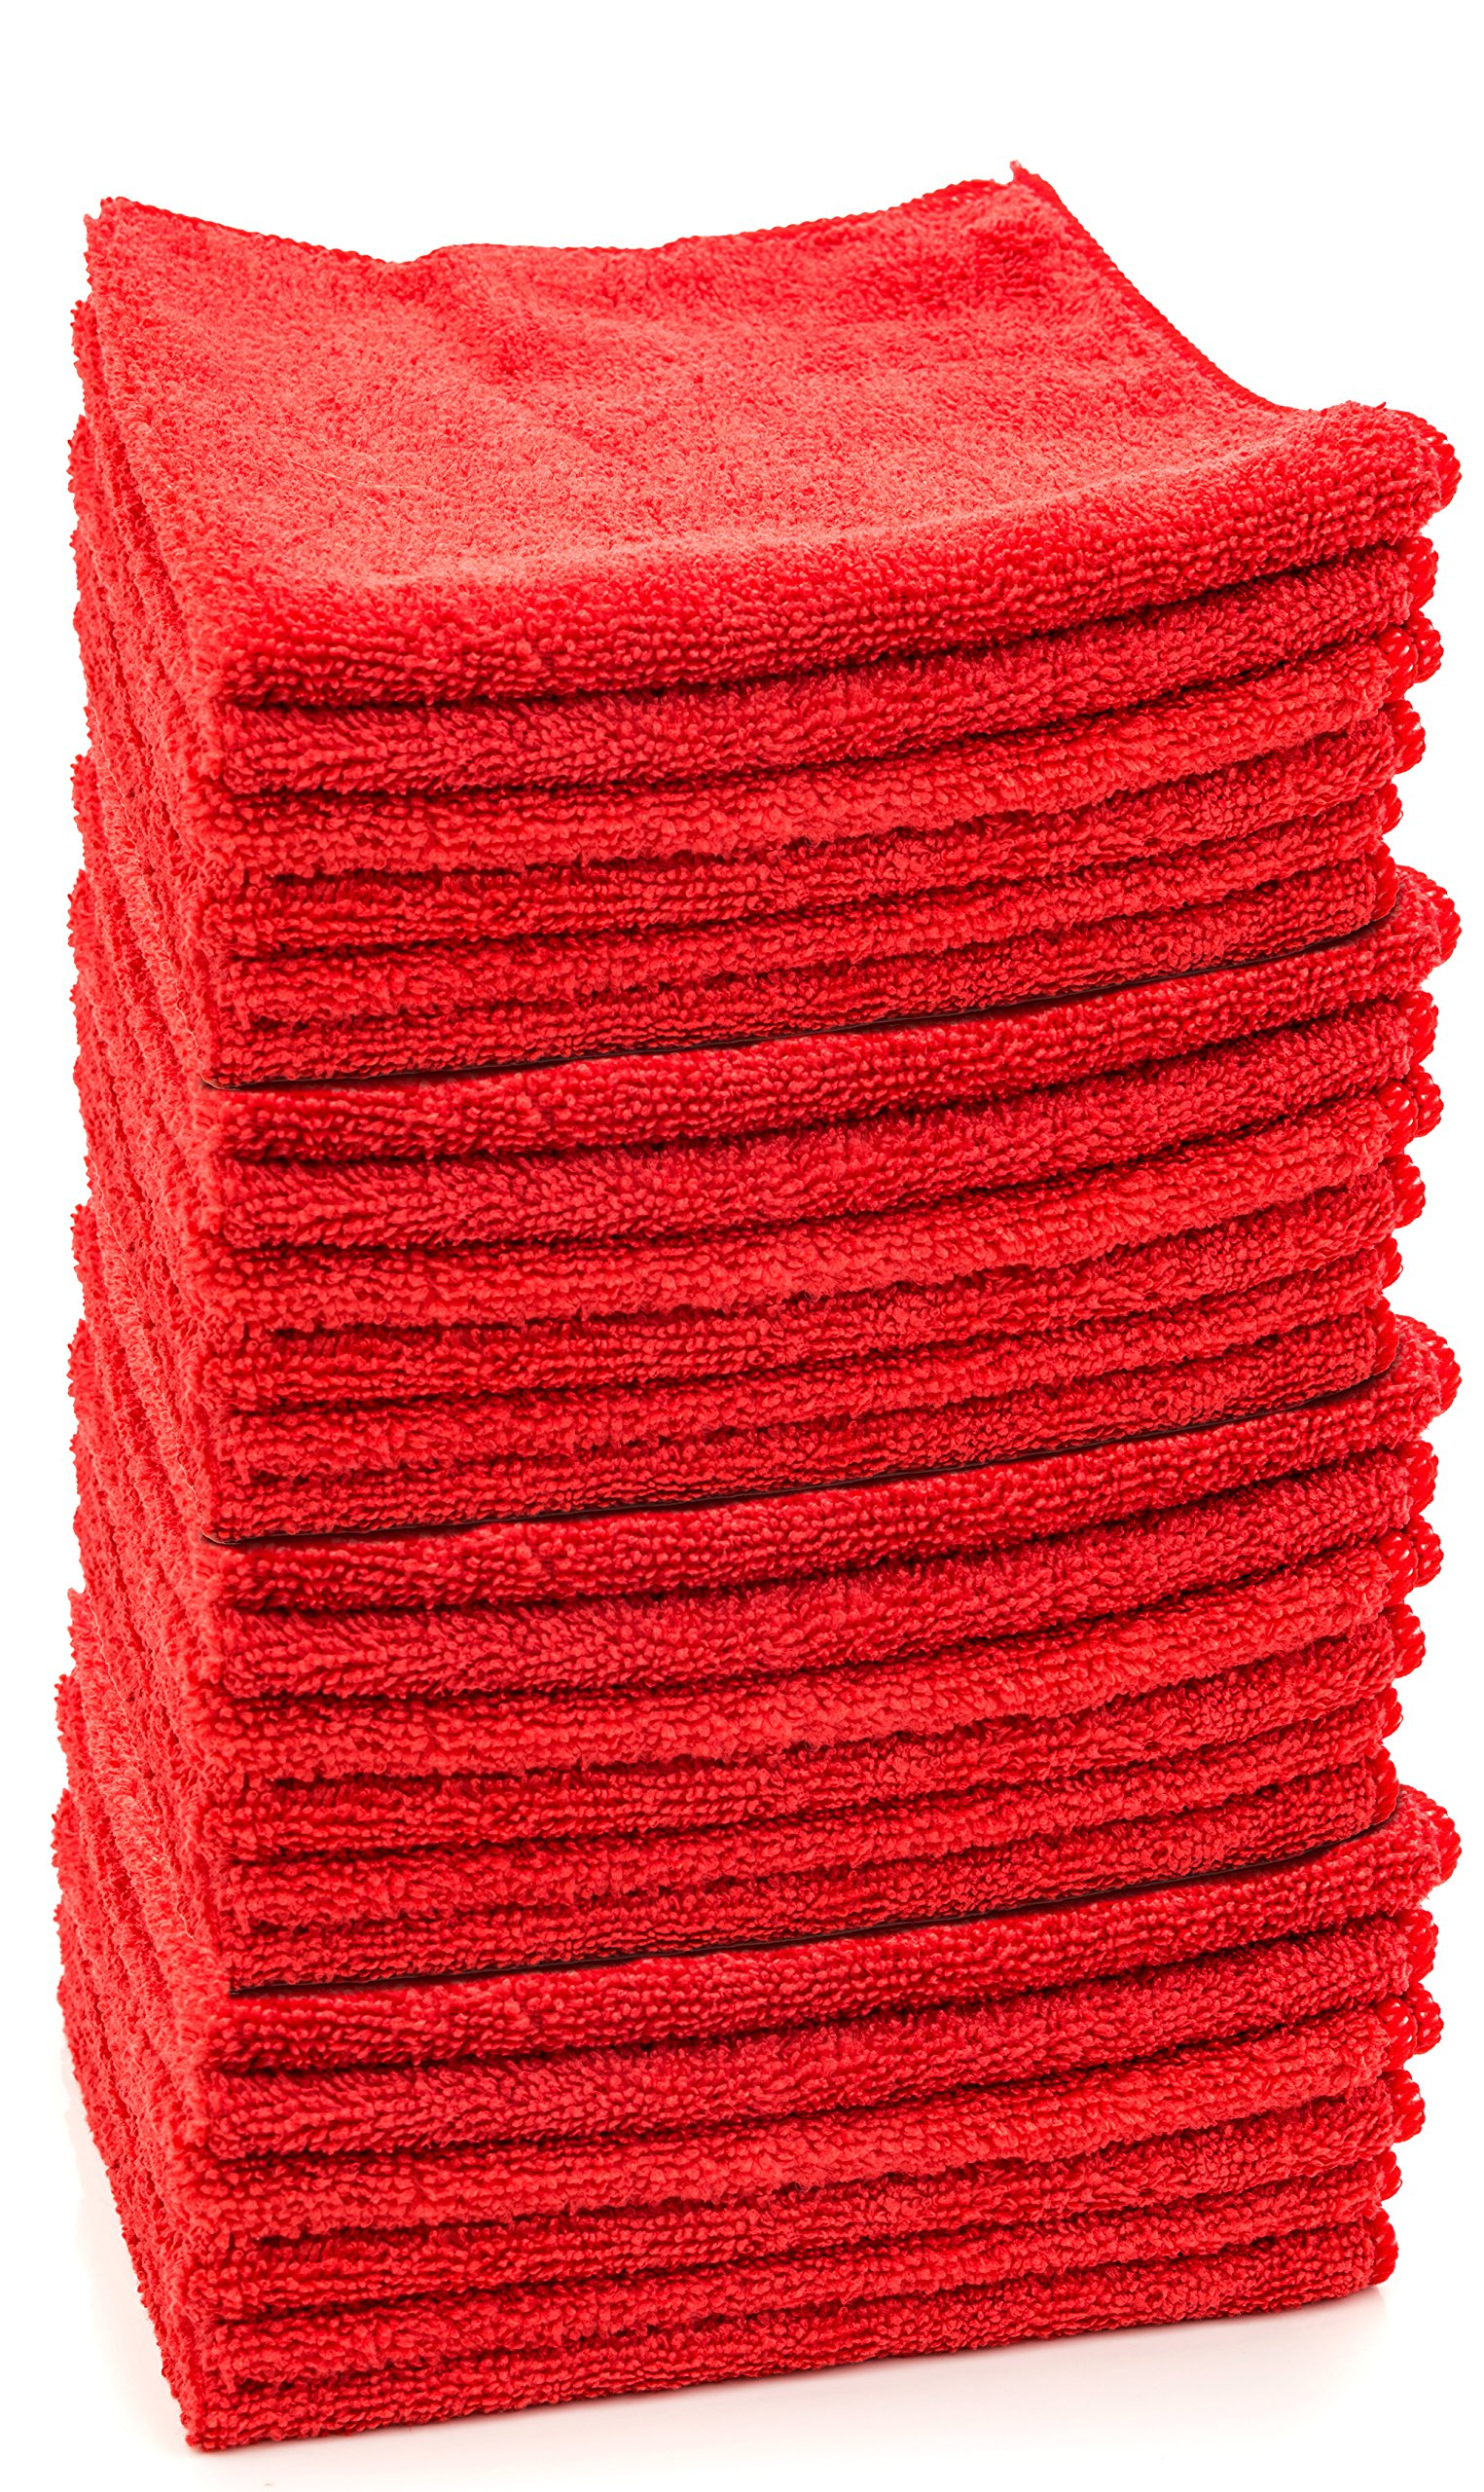 Dry Rite Premium Microfiber Cloth - Pack of 24 Best Cleaning Towels for Fine Auto Finishes, Chrome, Kitchen, Bath, TV, Great for Glass- Non Scratching, Use Wet/Dry- 16x16